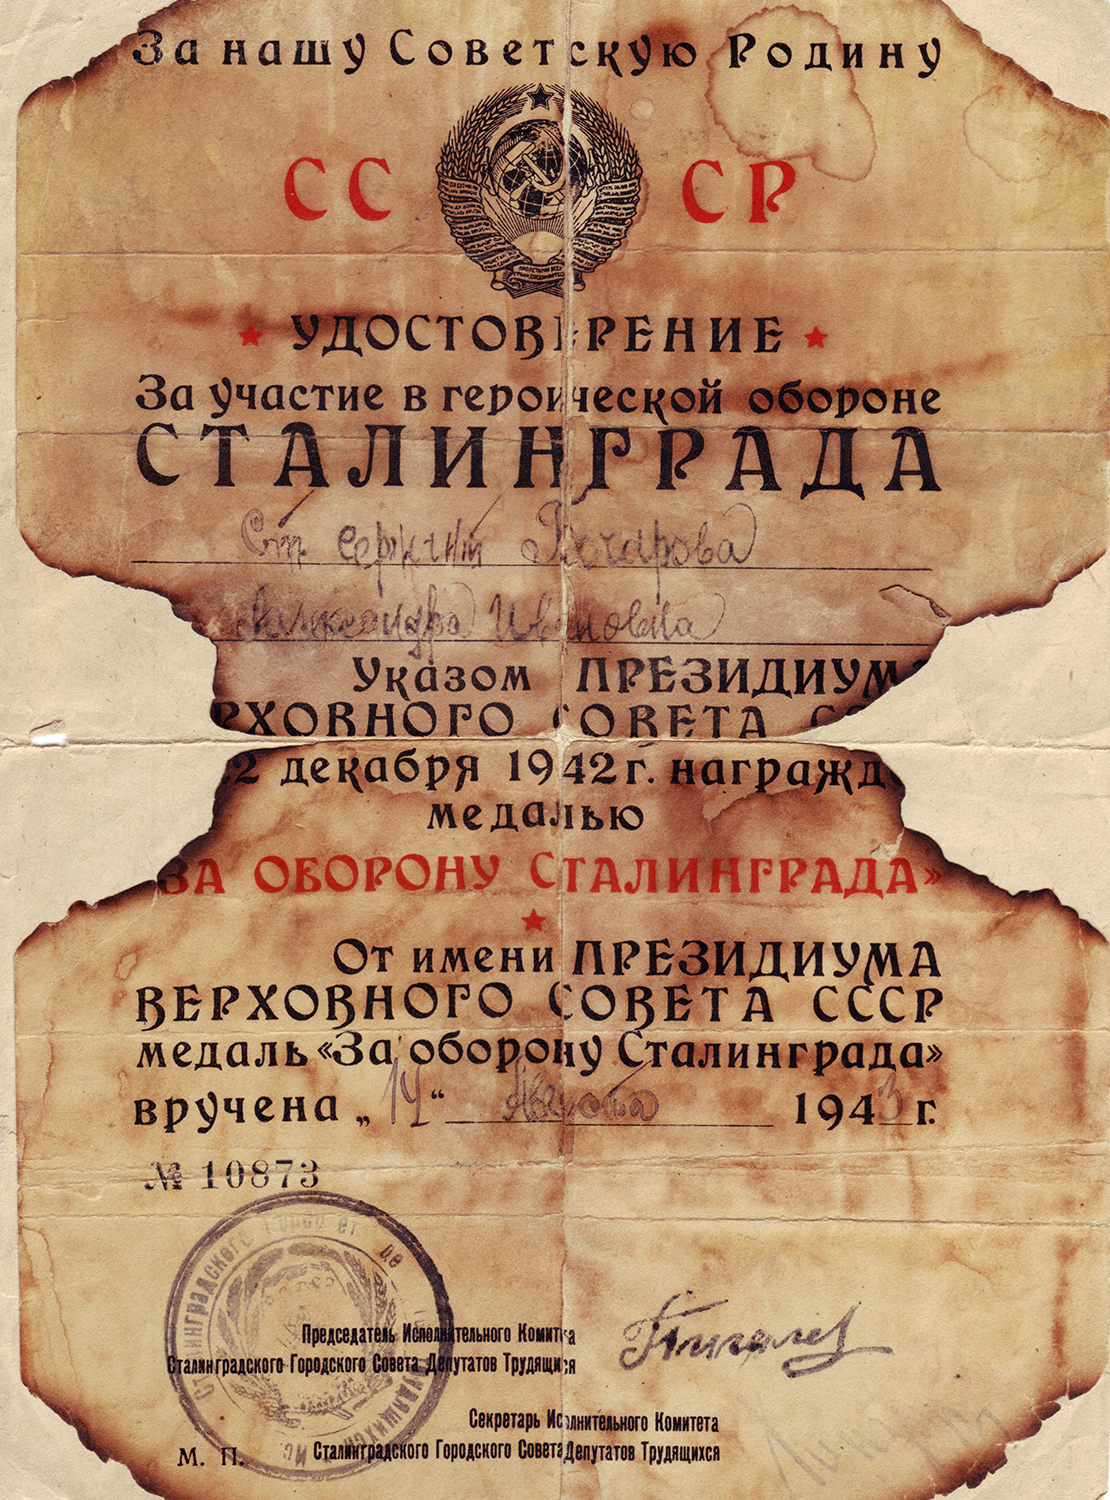 Medal certificate for the participation in the Battle of Stalingrad. Awarded to Alexandra Bocharova.